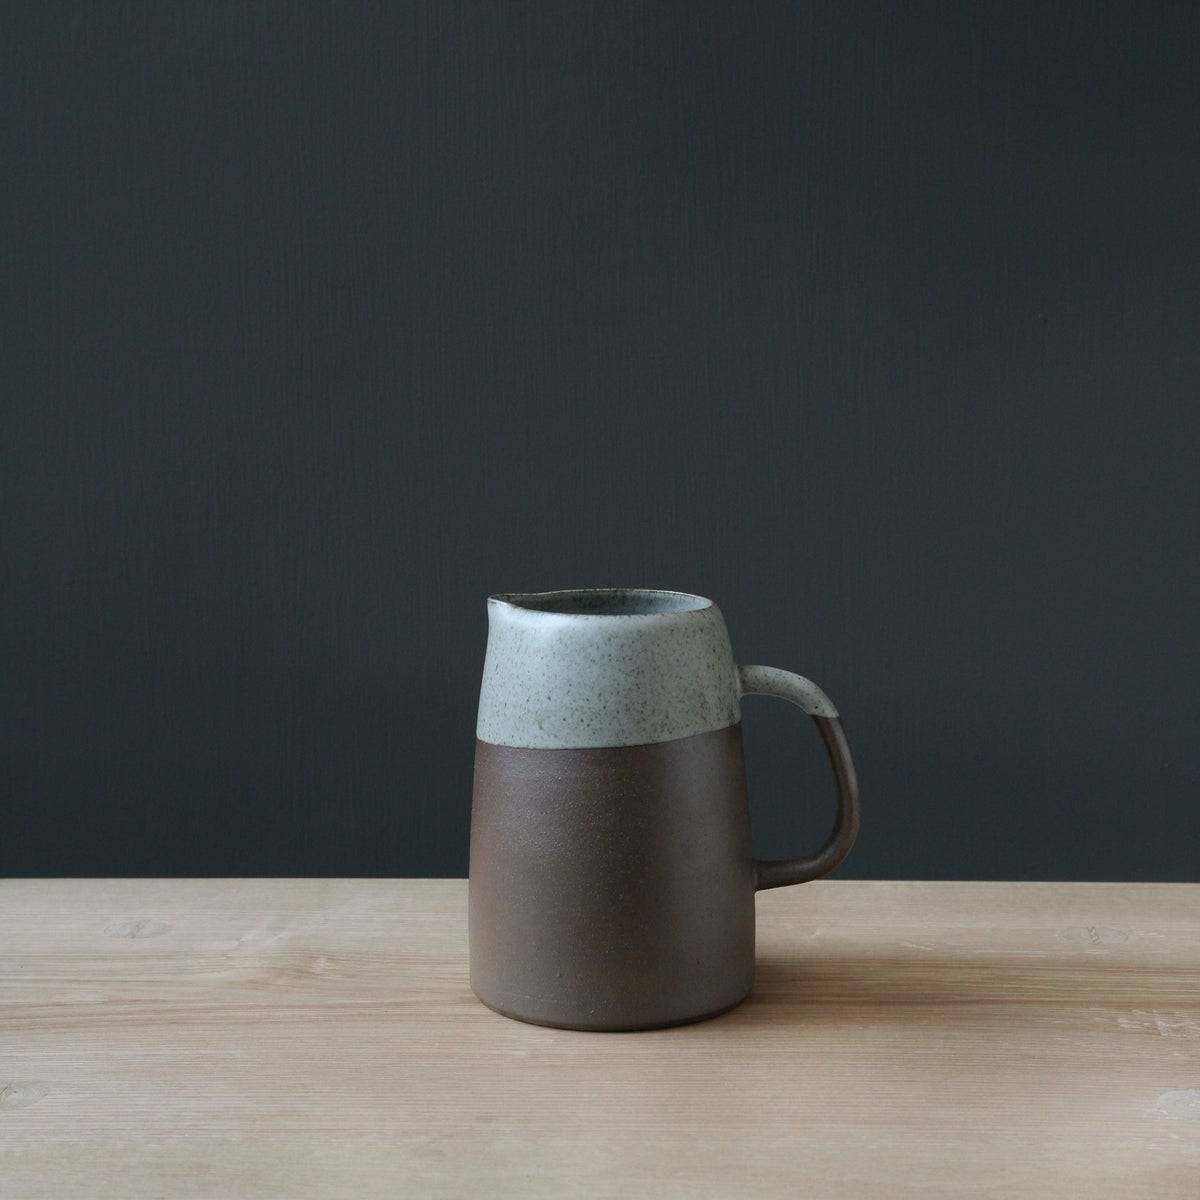 Image of Large Brown & Speckled Jug by Elaine Bolt